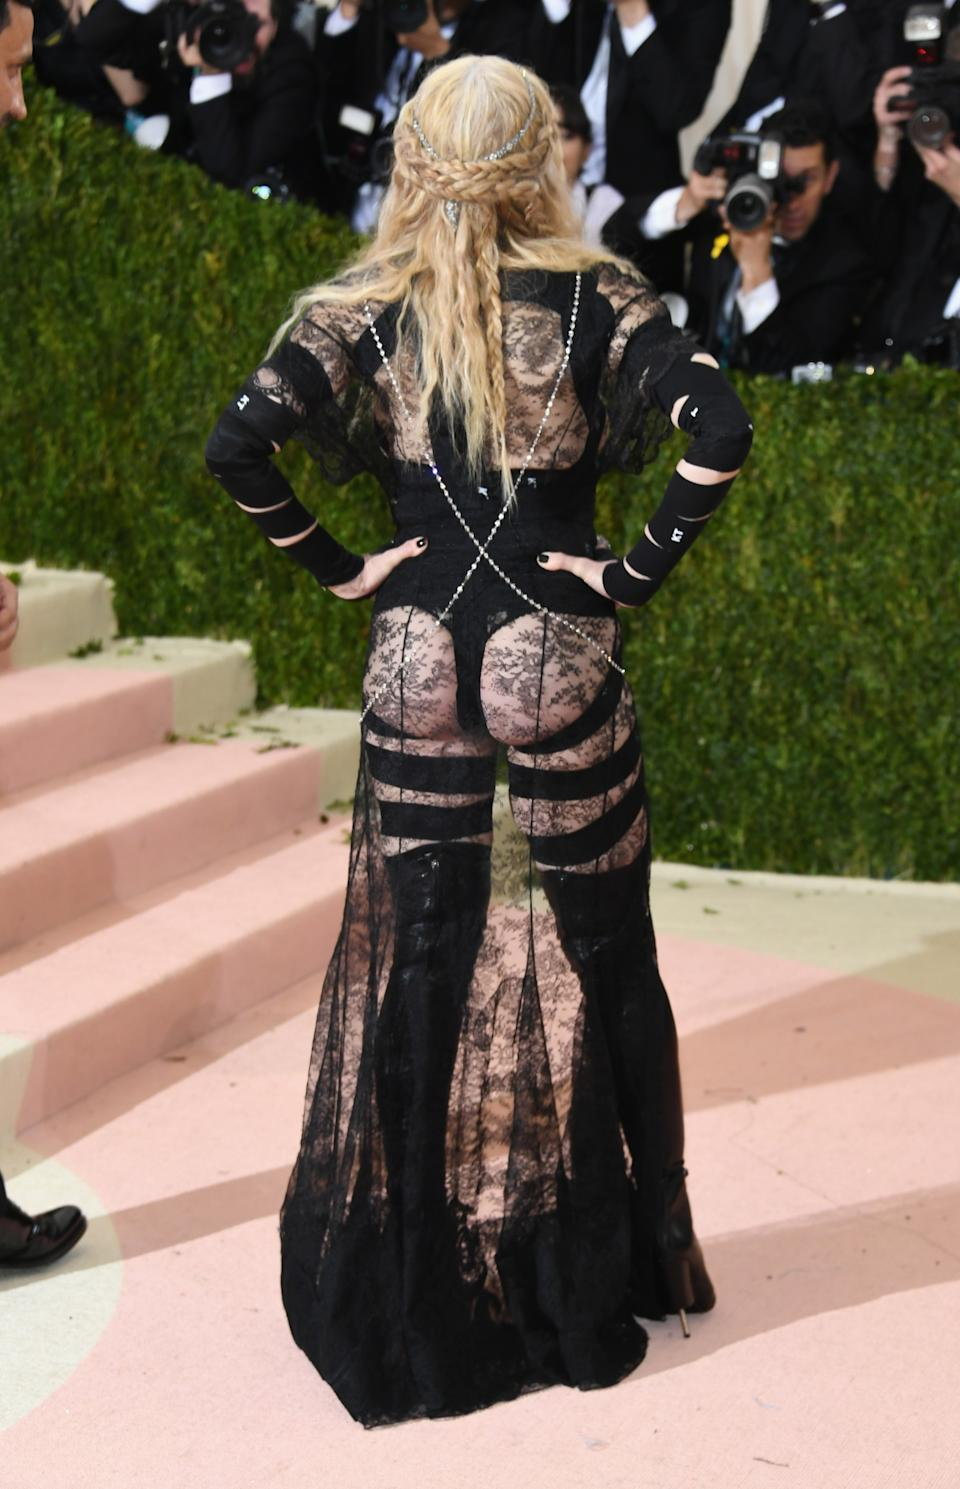 Madonna attends the 2015 Met Gala